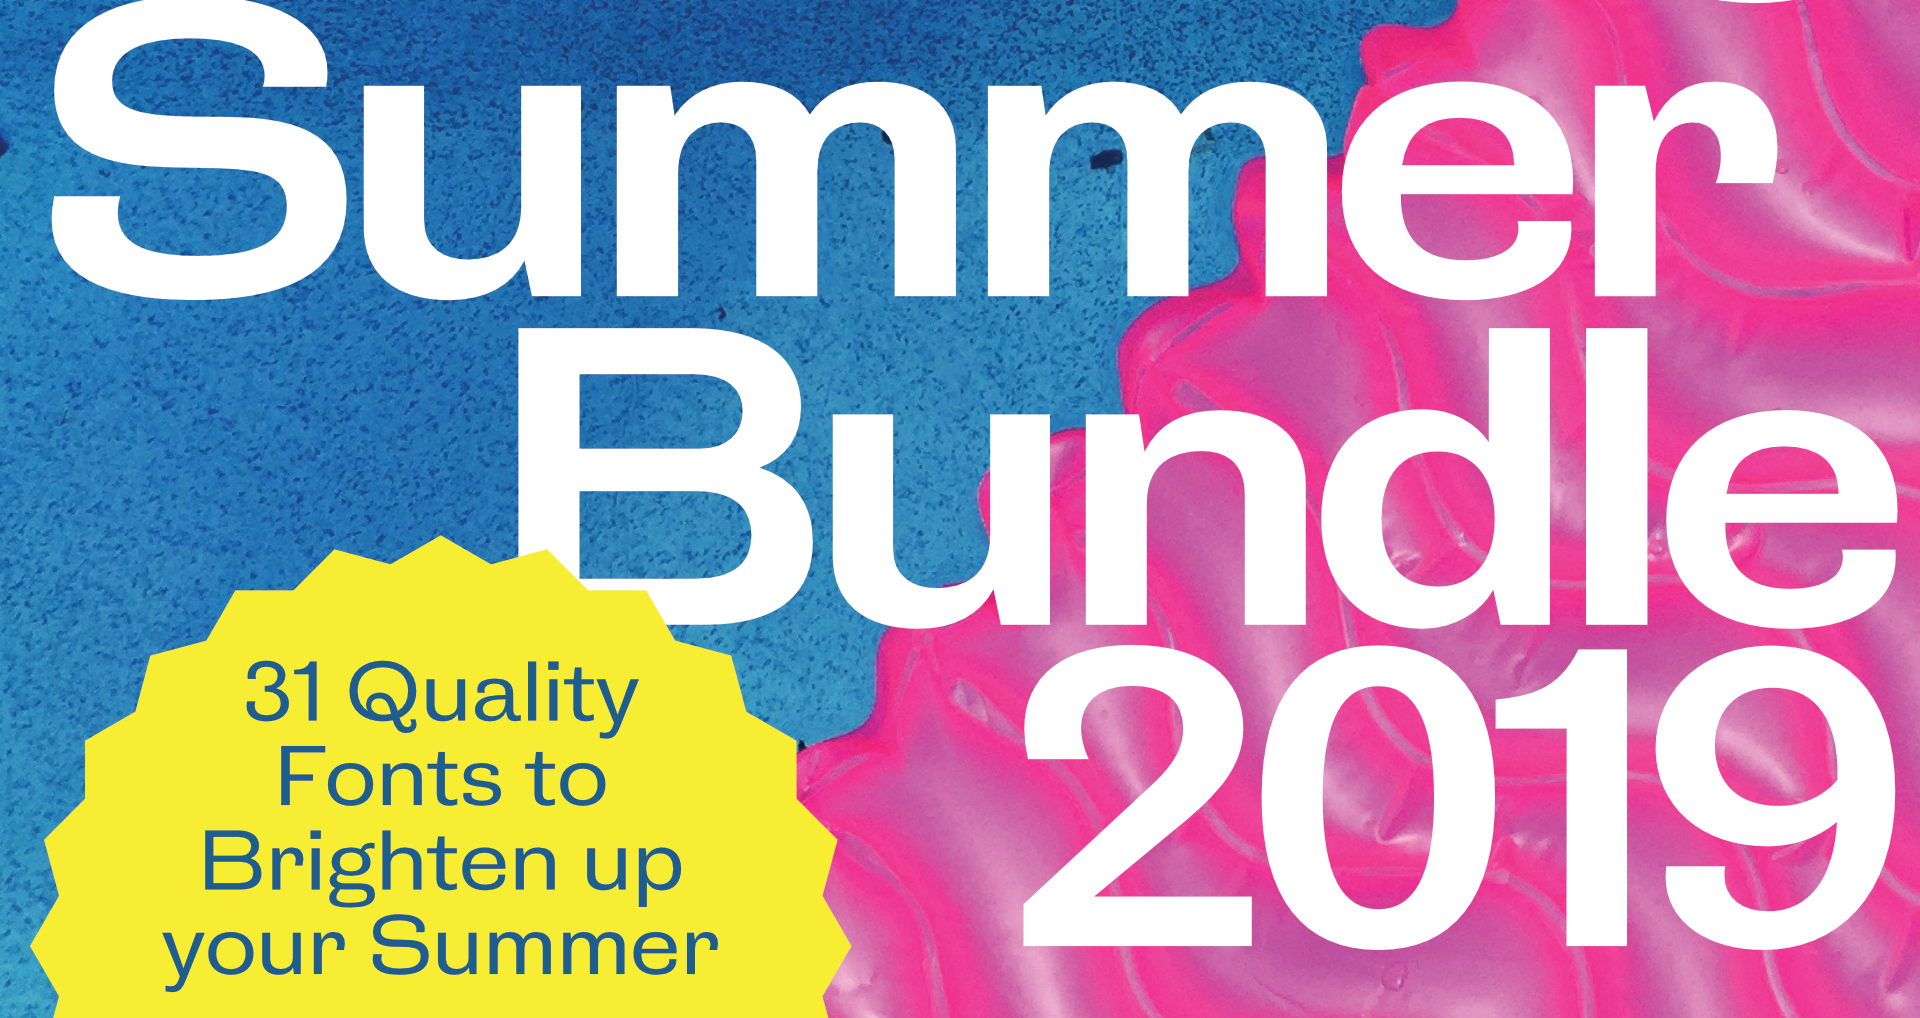 The HDC Summer Bundle includes 10 typefaces for only $15